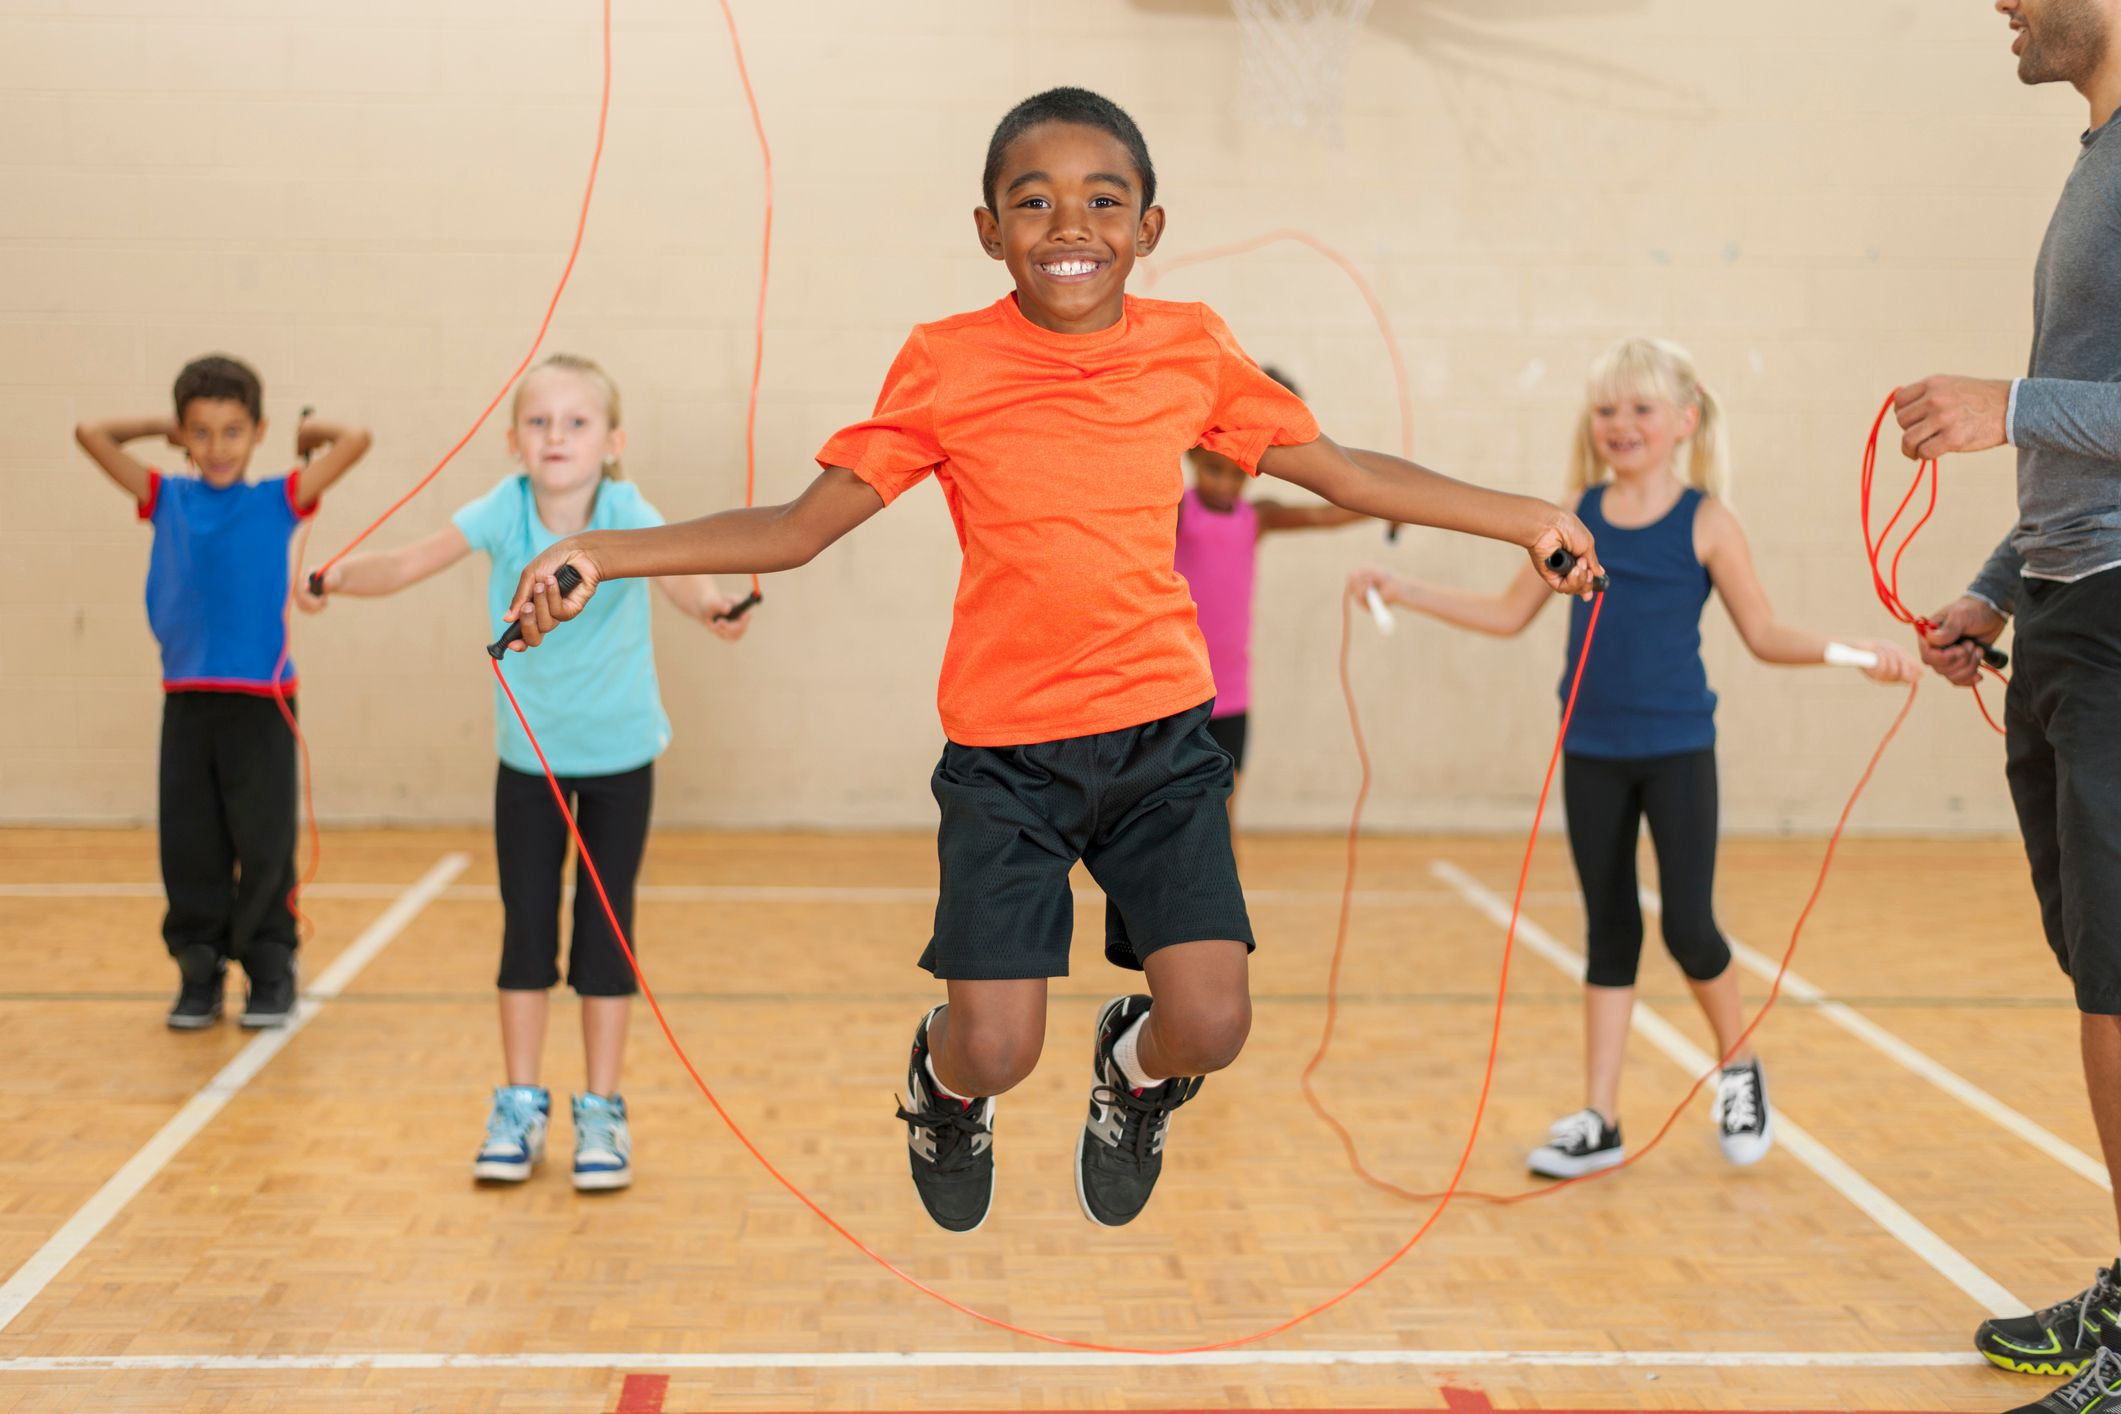 Students in school gym with jump ropes.